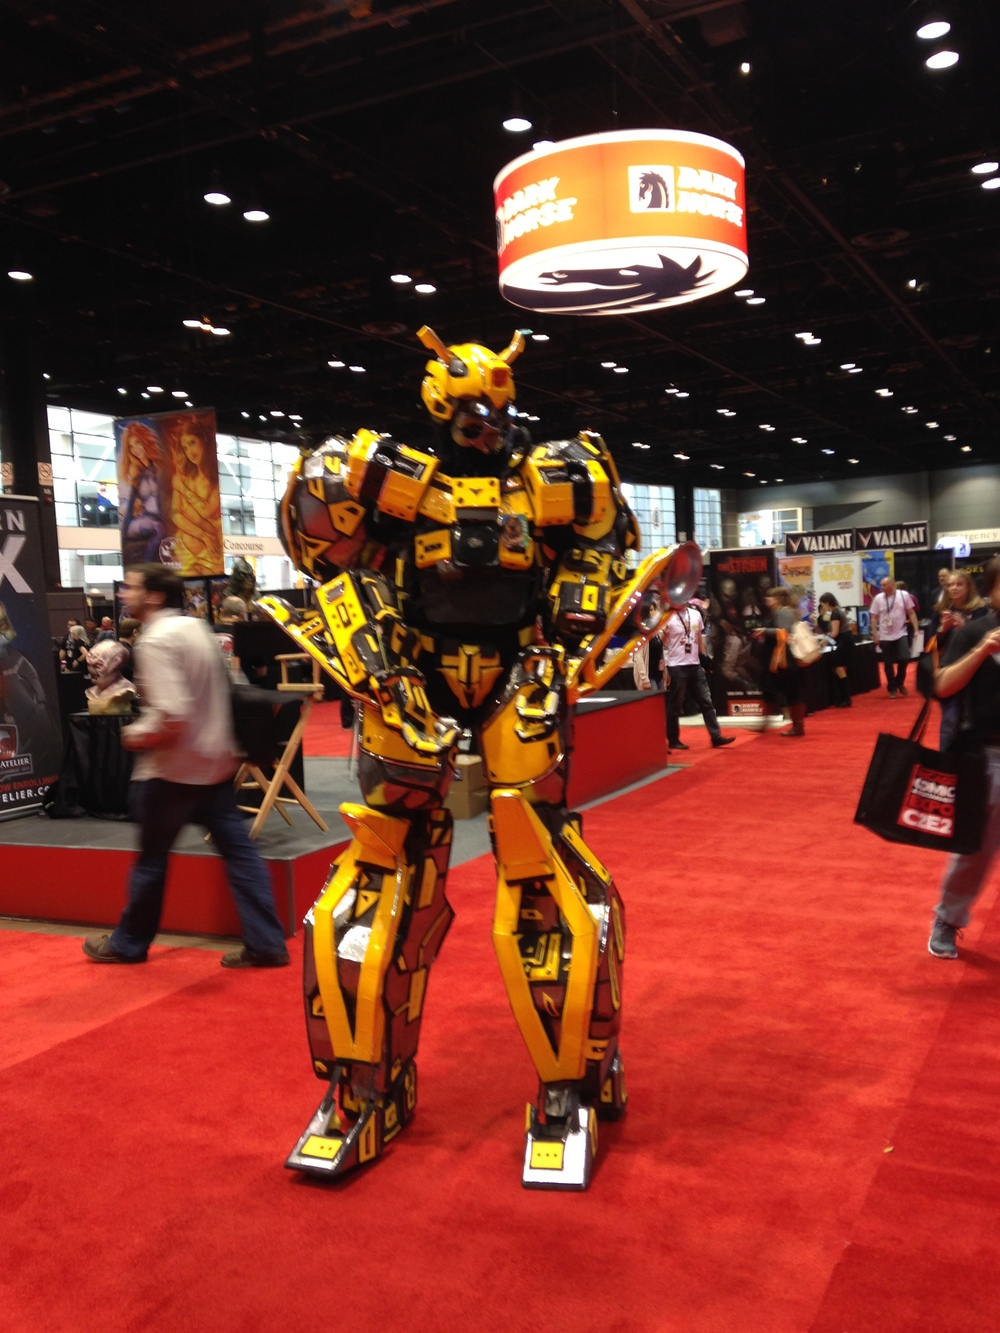 C2E2 Cosplayer - 8 Foot tall Transformers Bumble Bee